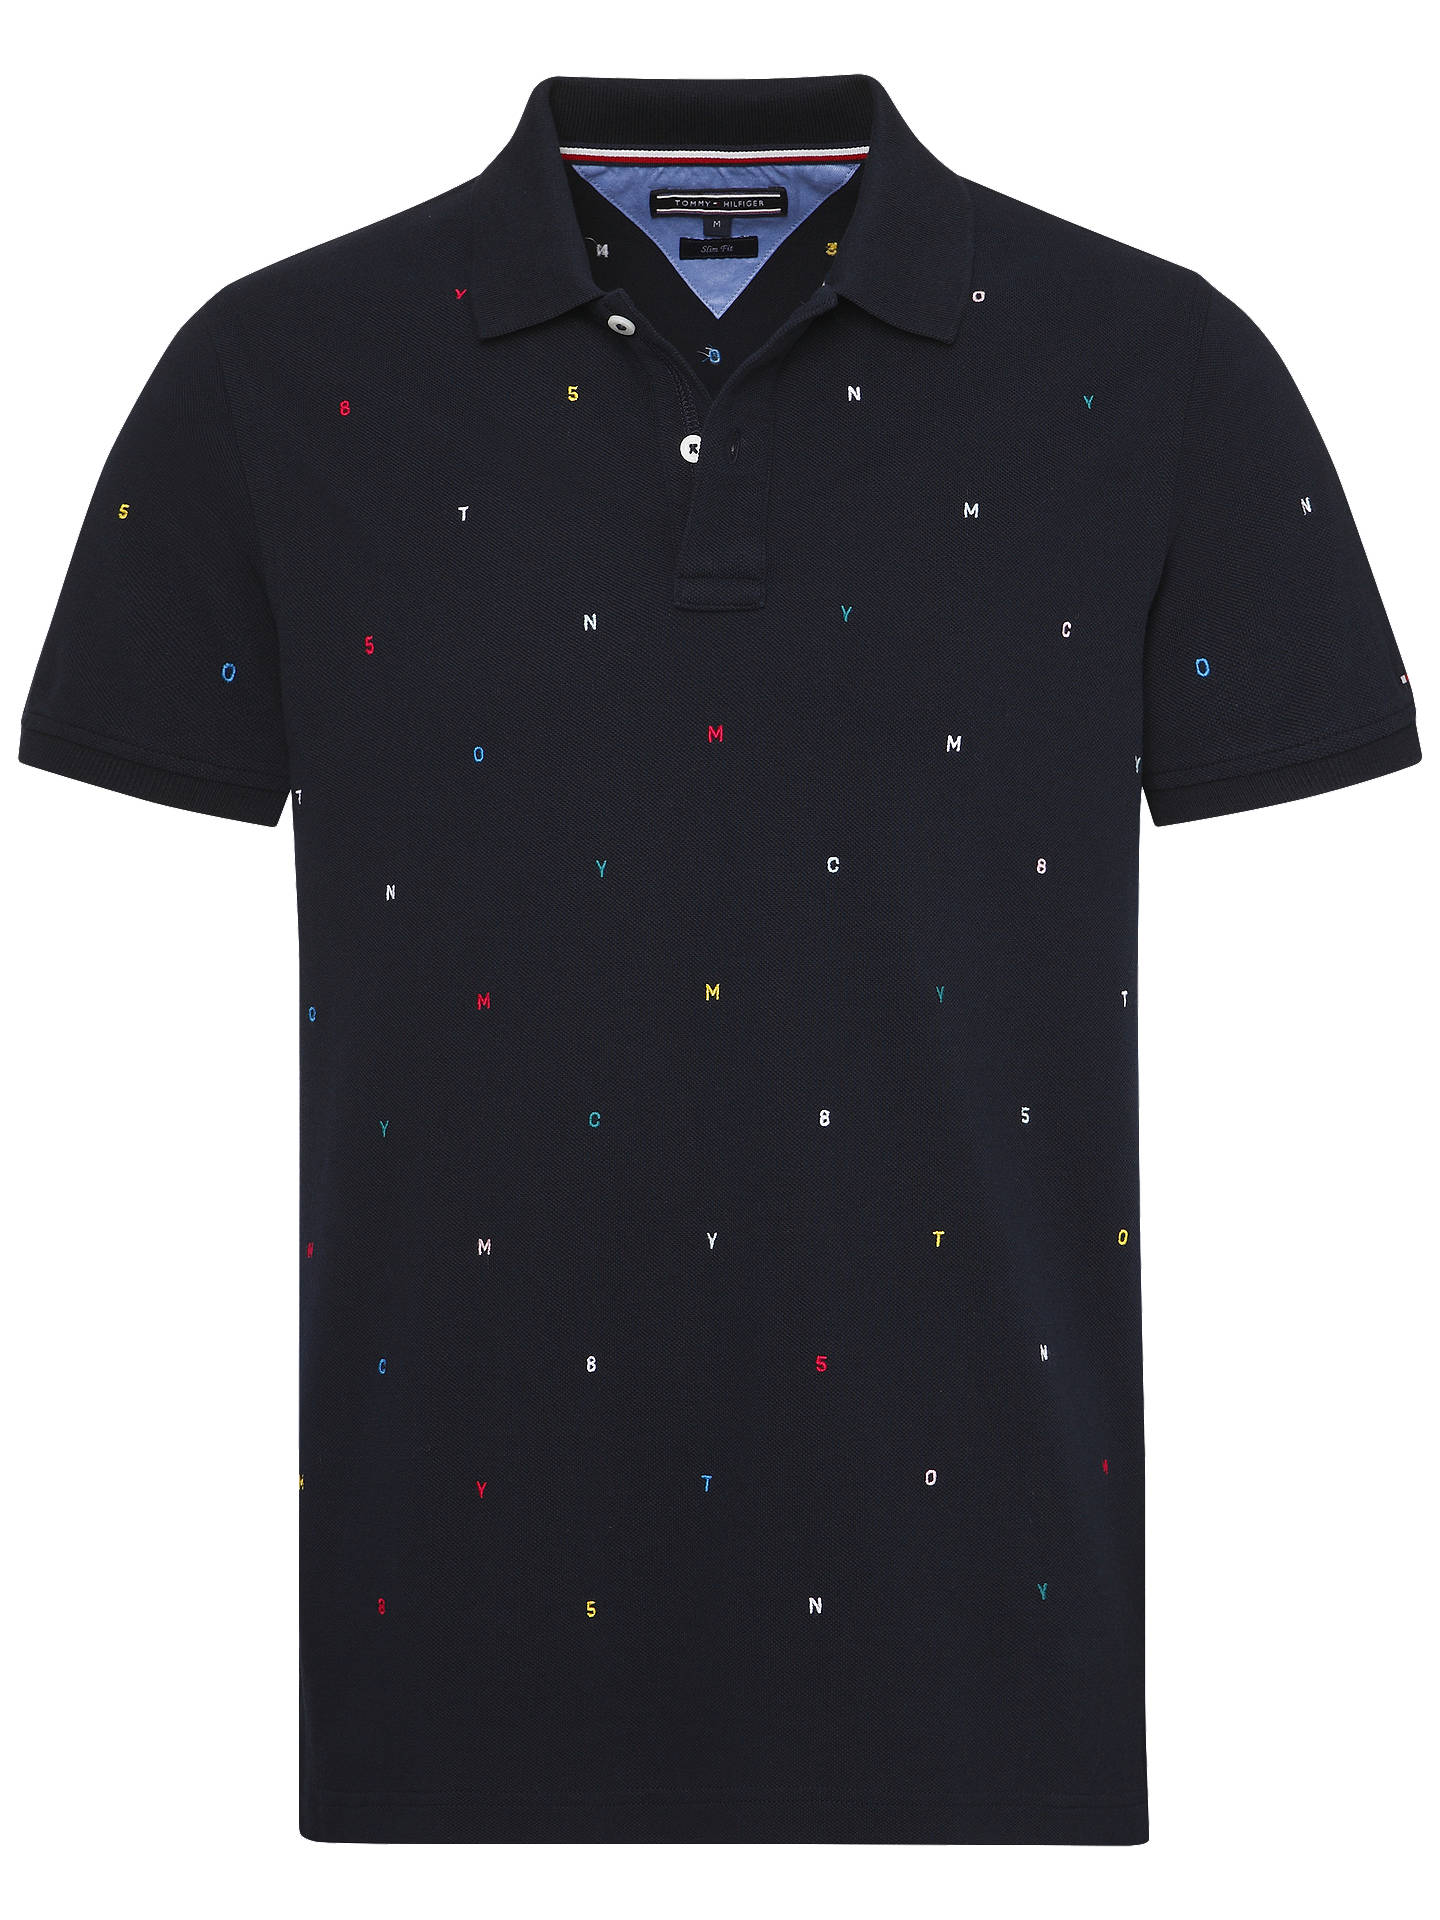 Tommy Hilfiger Short Sleeve Letter Embroidered Polo Shirt